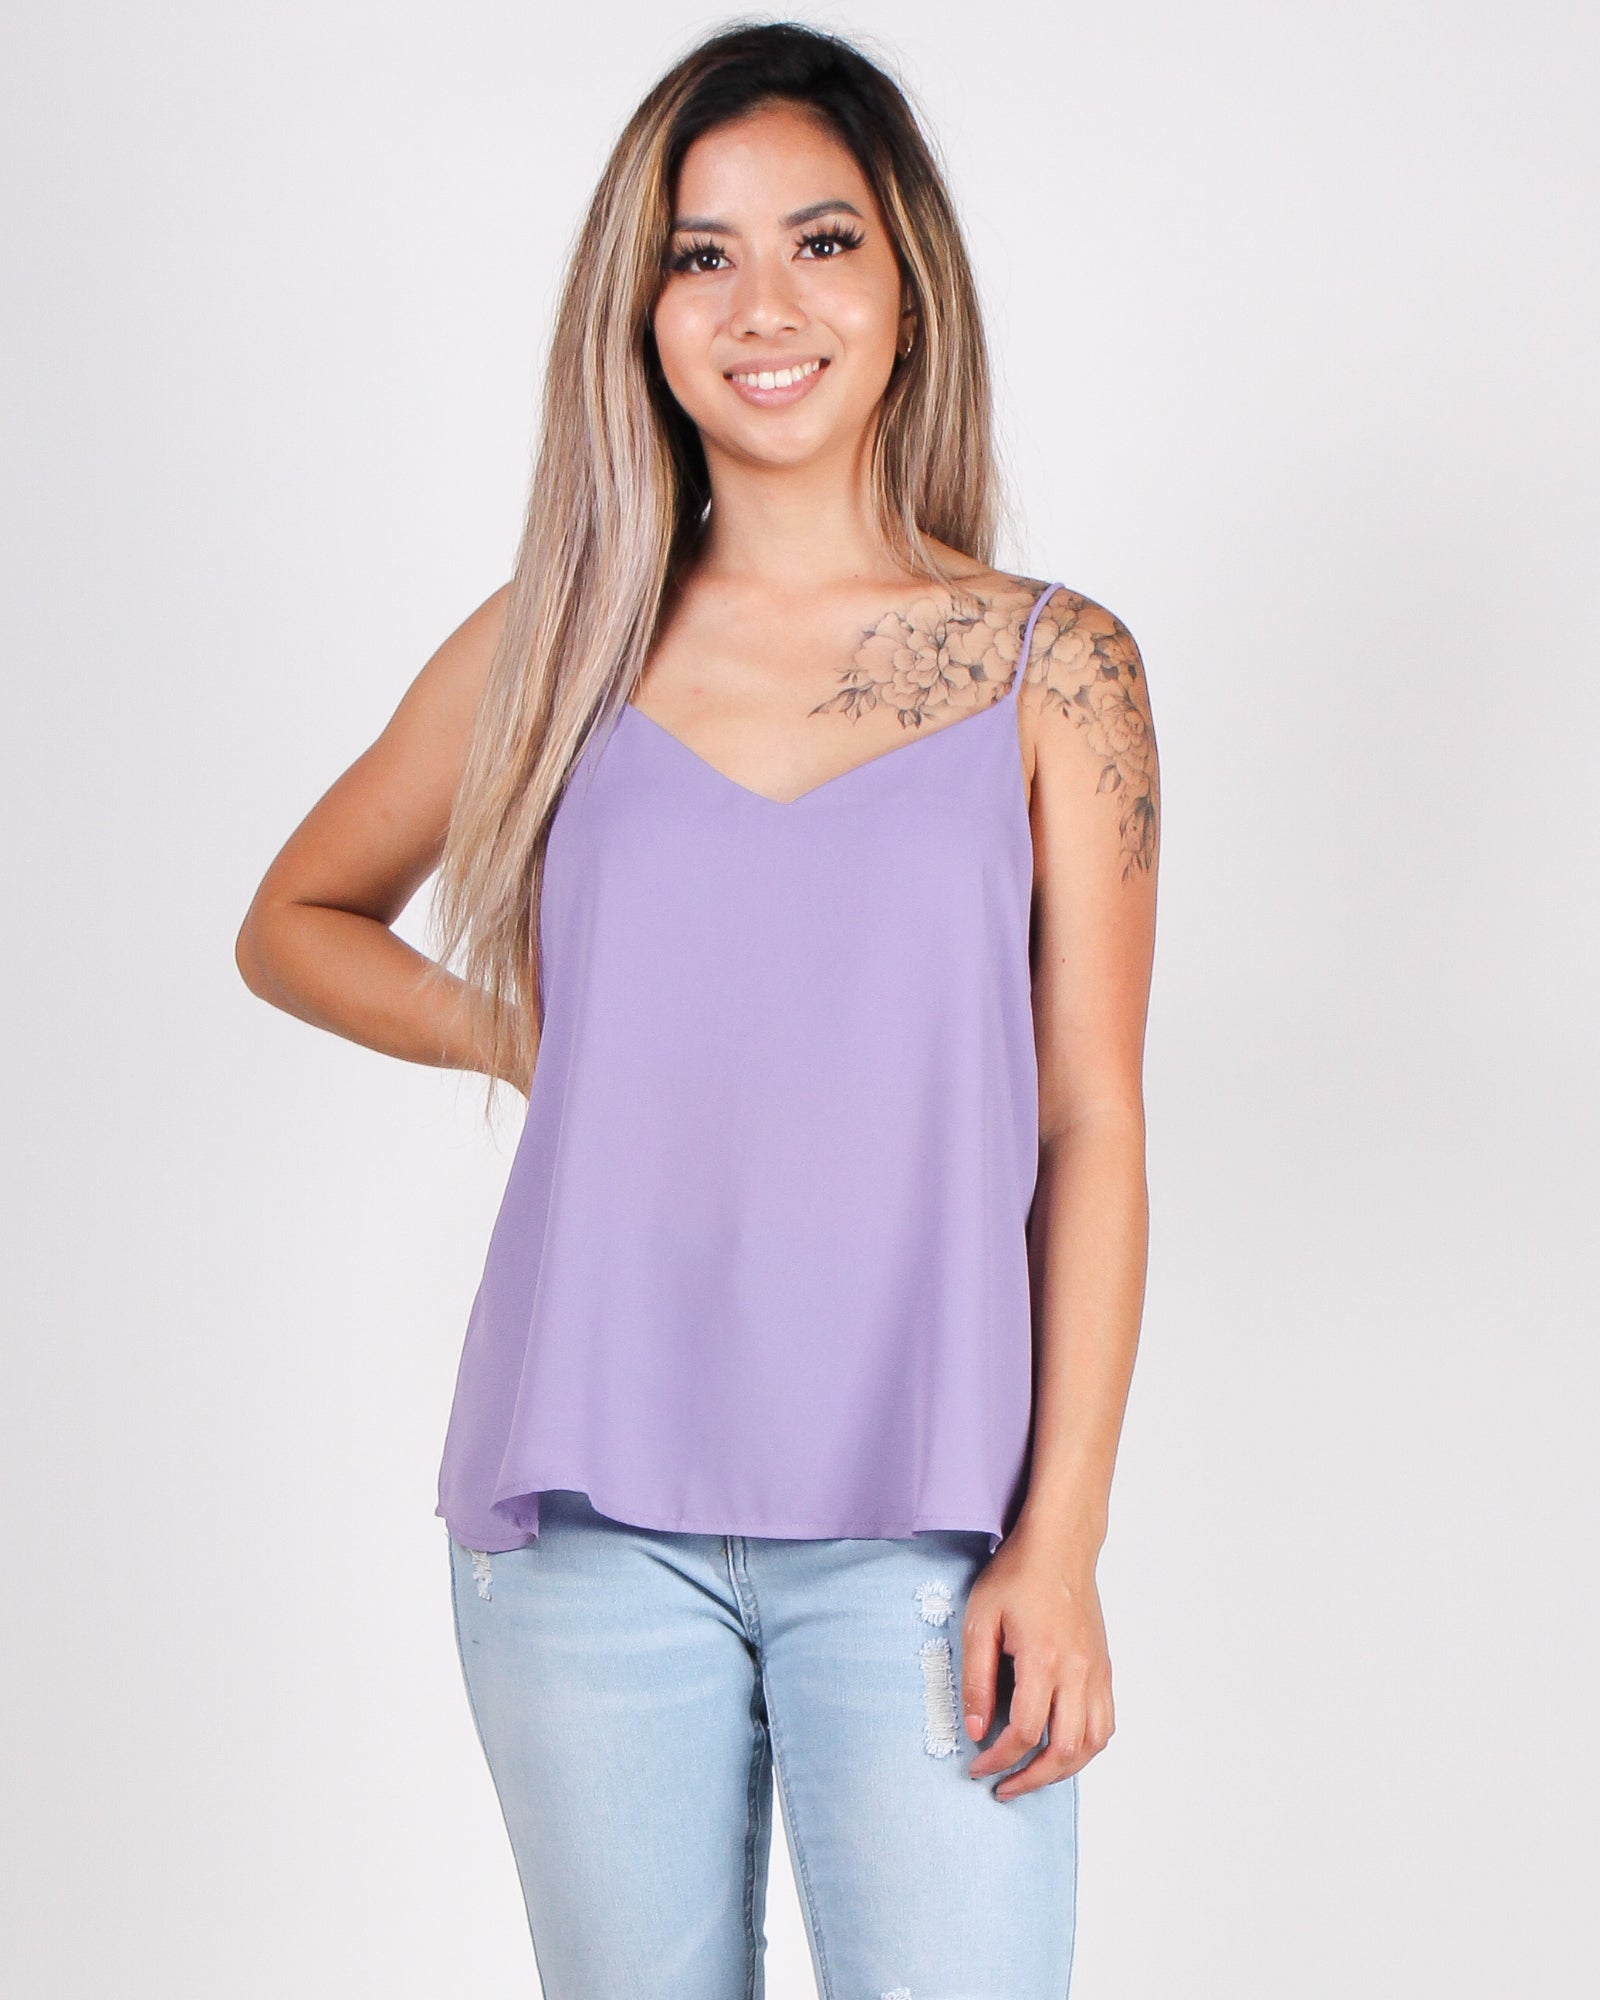 One Day at  a Time Blouse (Lavender)